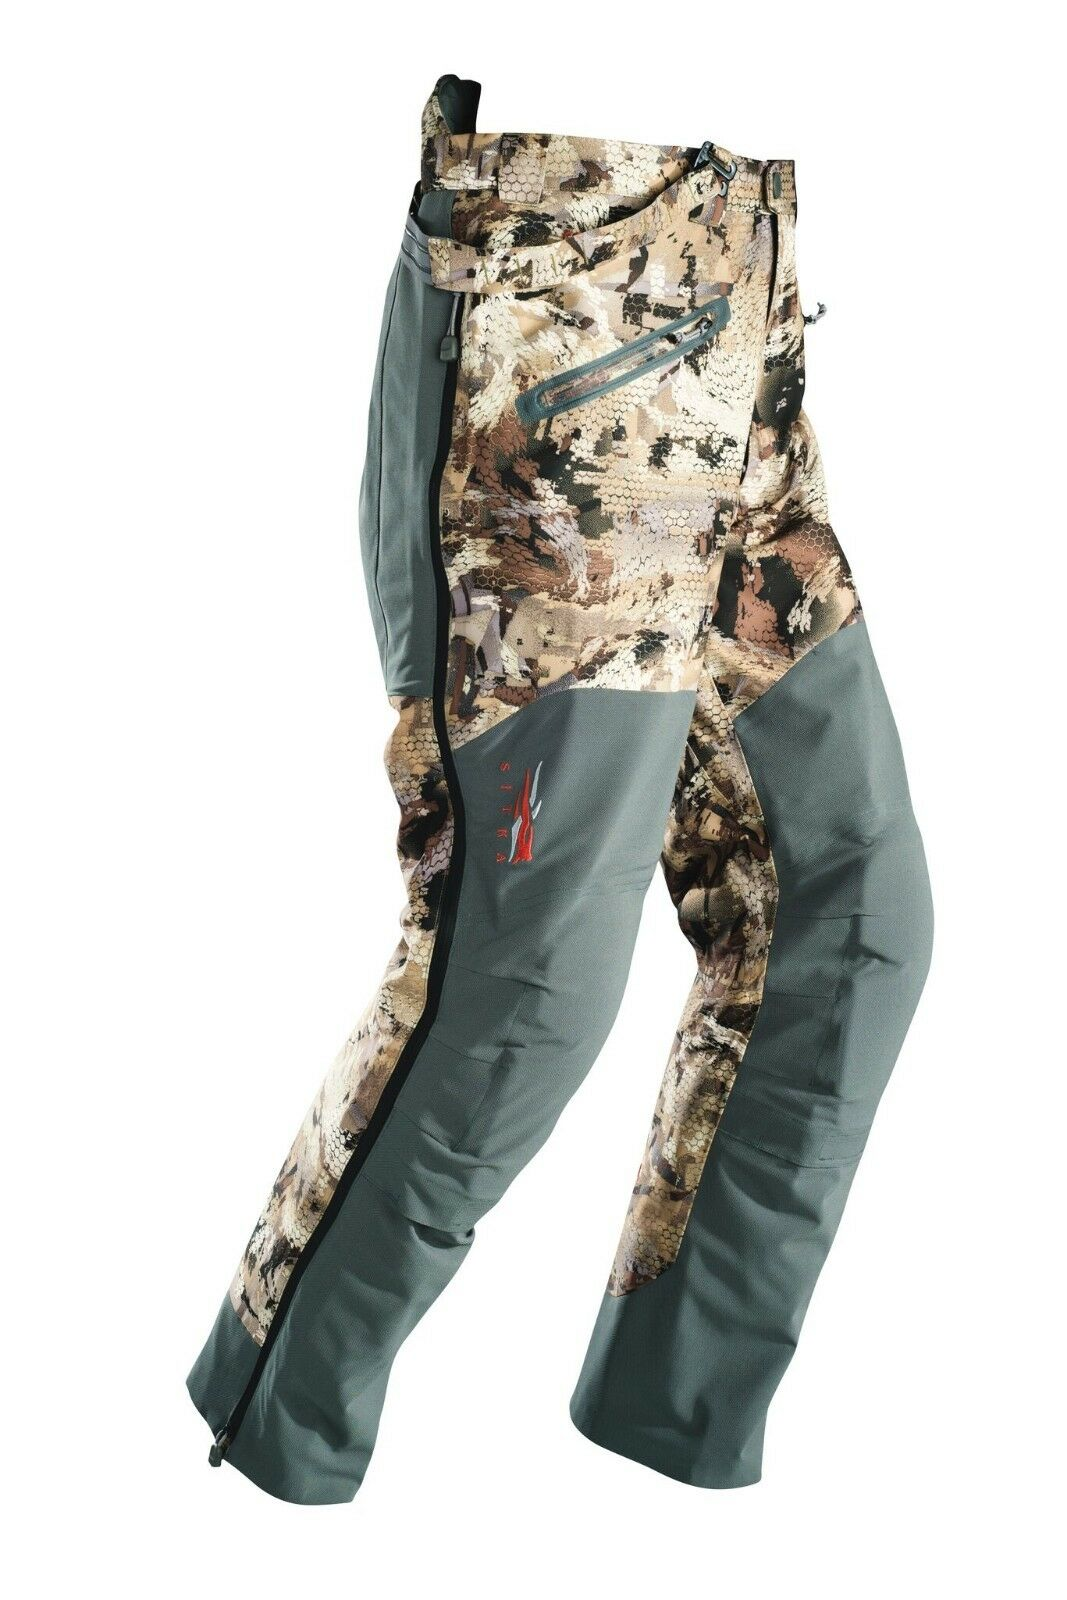 Sitka Layout Pant Waterfowl Size XL Tall -  U.S. Free Shipping  best quality